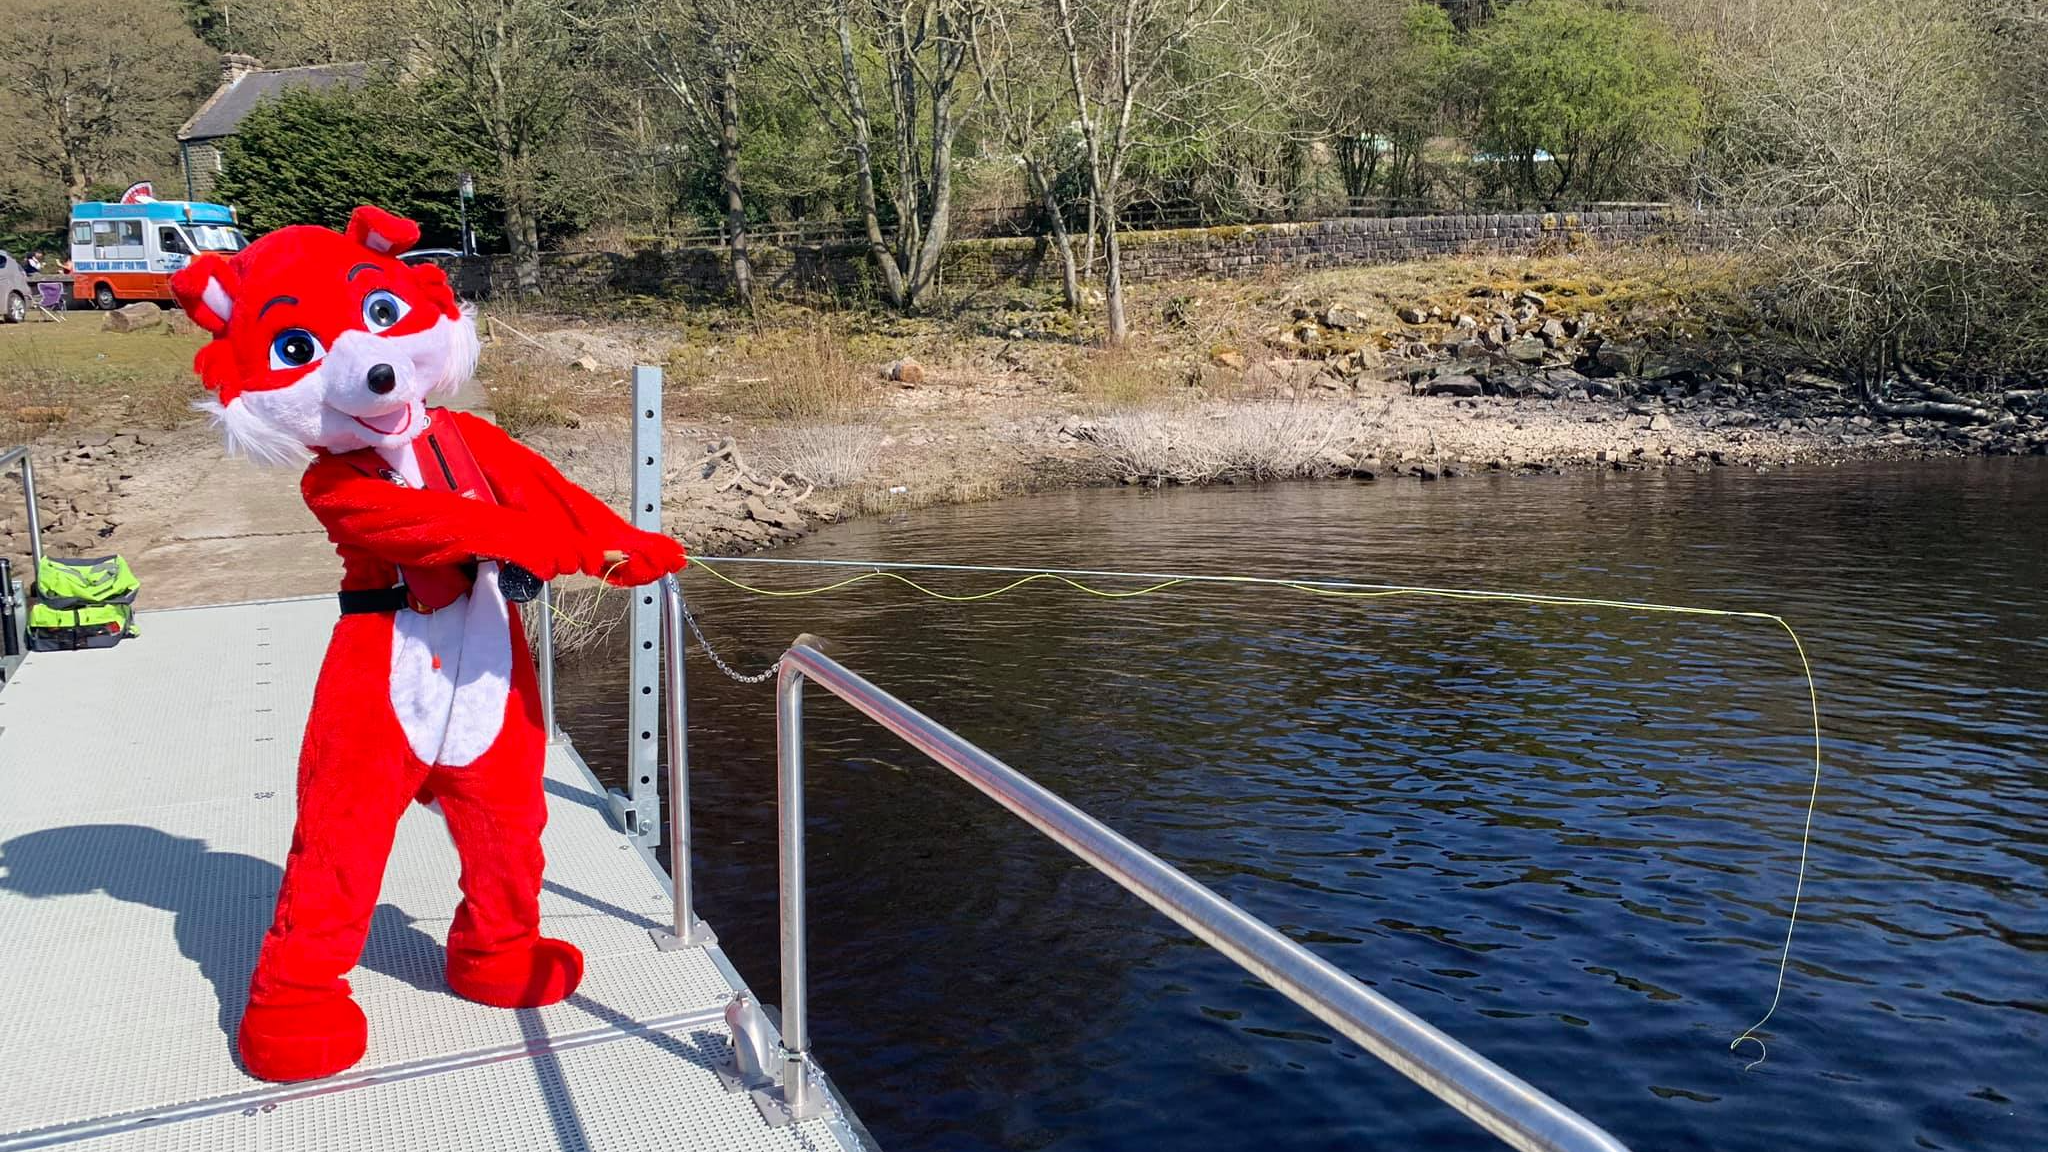 Our Mascot, Shasby The Forgetful Fox, Is Fishing From The Accessible Pontoon.